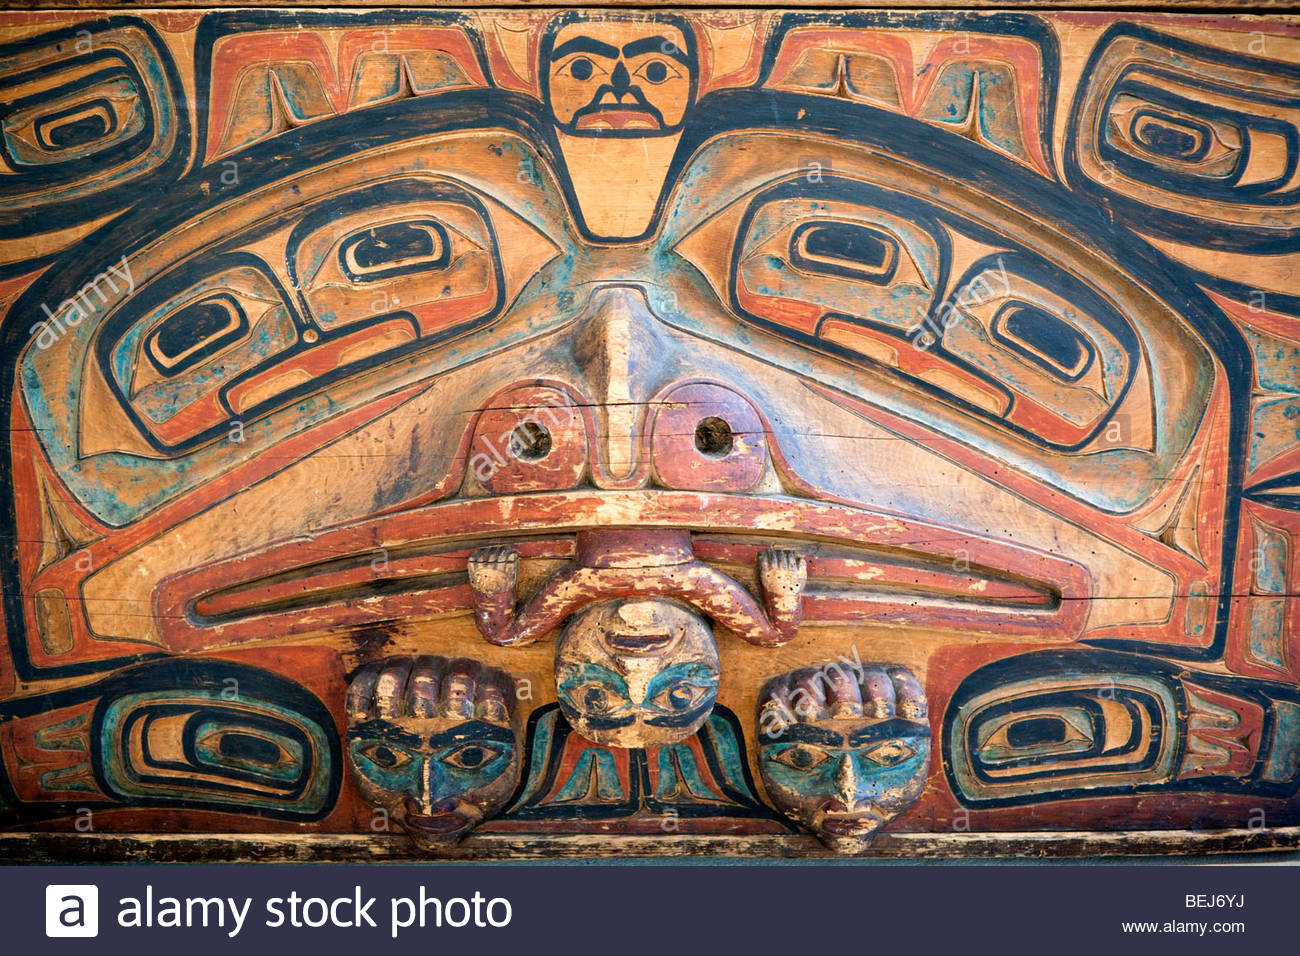 Haida Art at Museum of Anthropology, Vancouver, B.C. - Stock Image